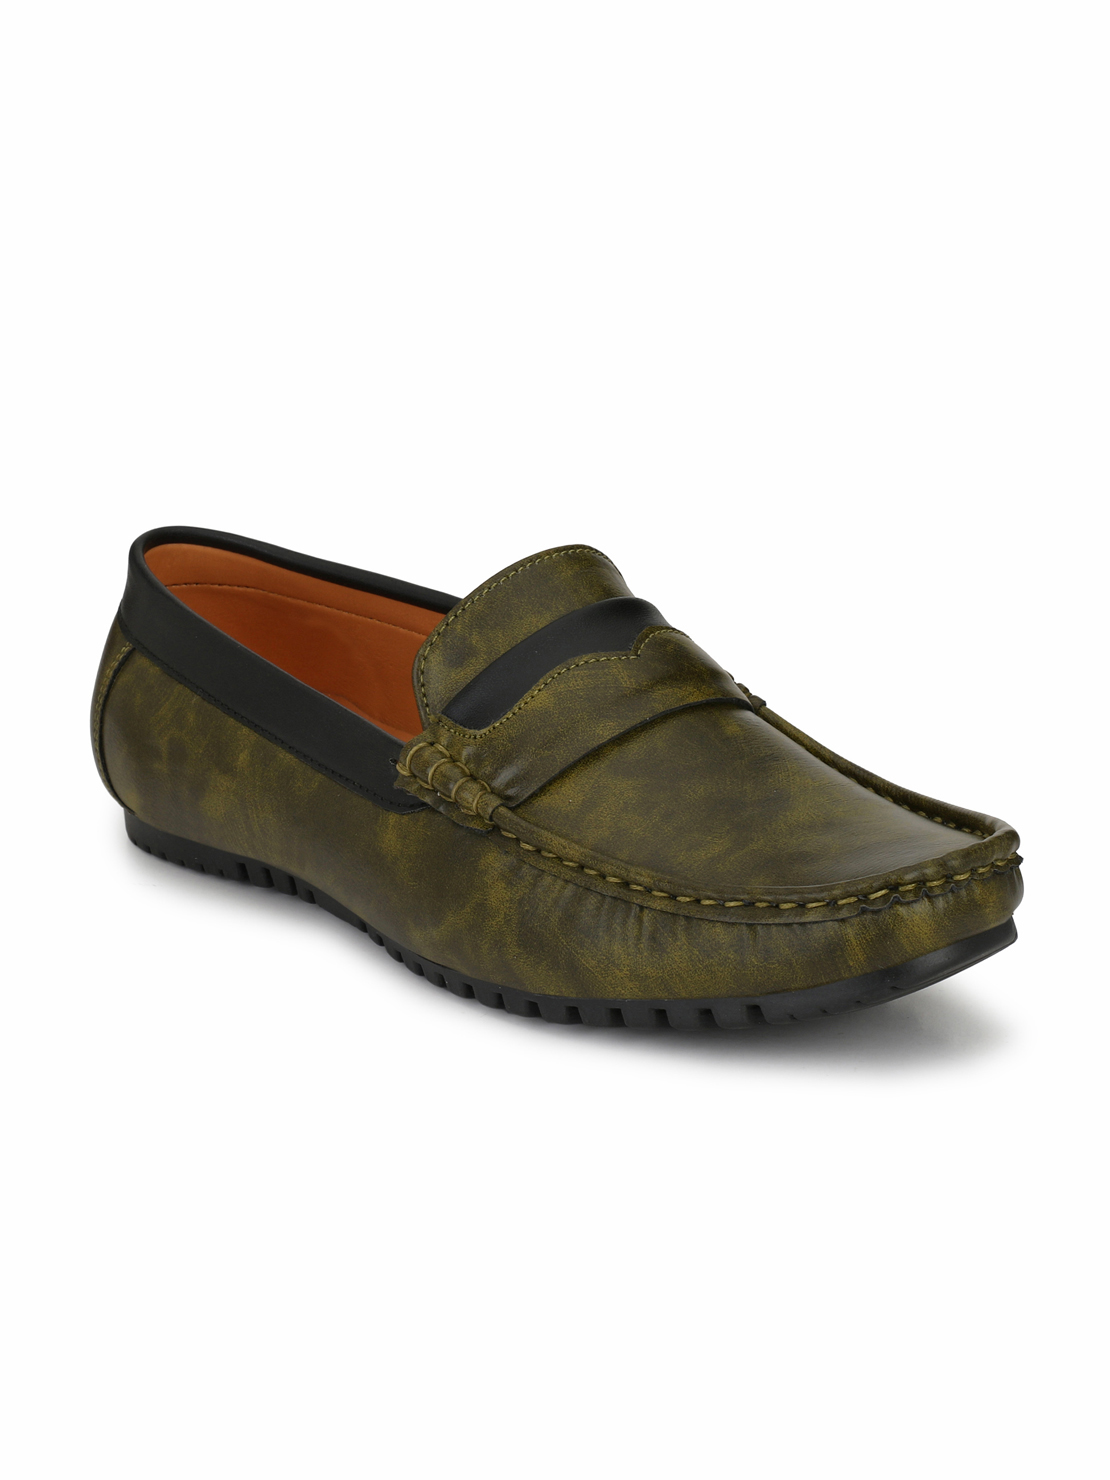 Guava | Men's Casual loafer Shoe - Olive Green